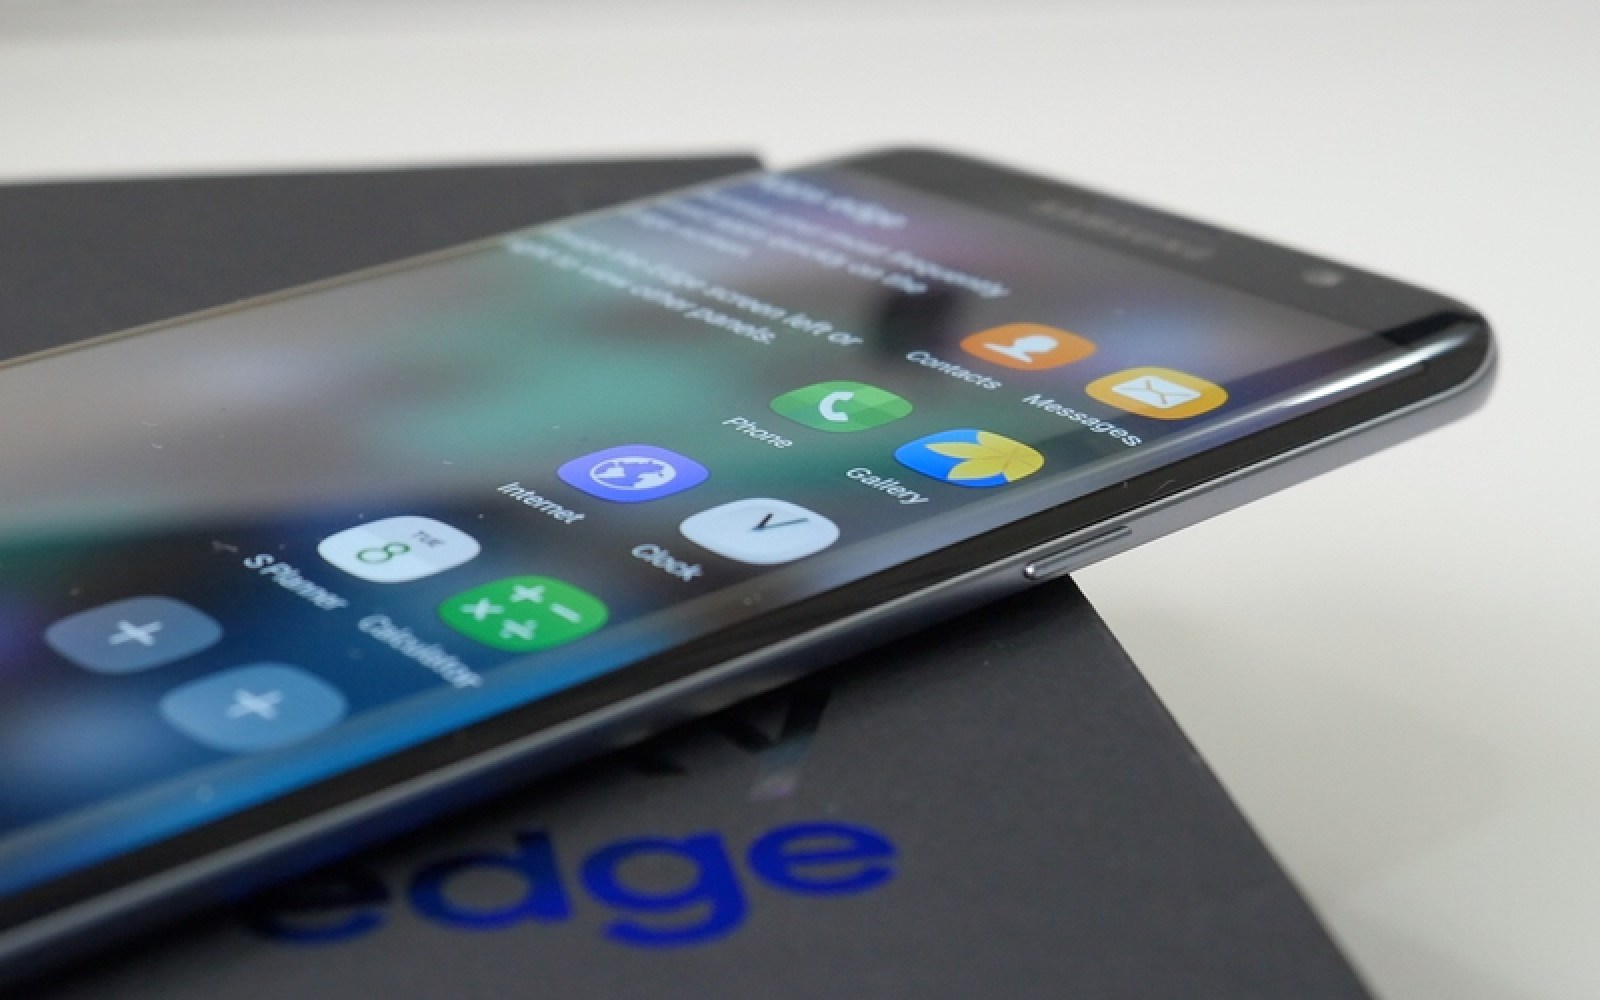 Here's how to use the Edge screen on Galaxy S7 Edge